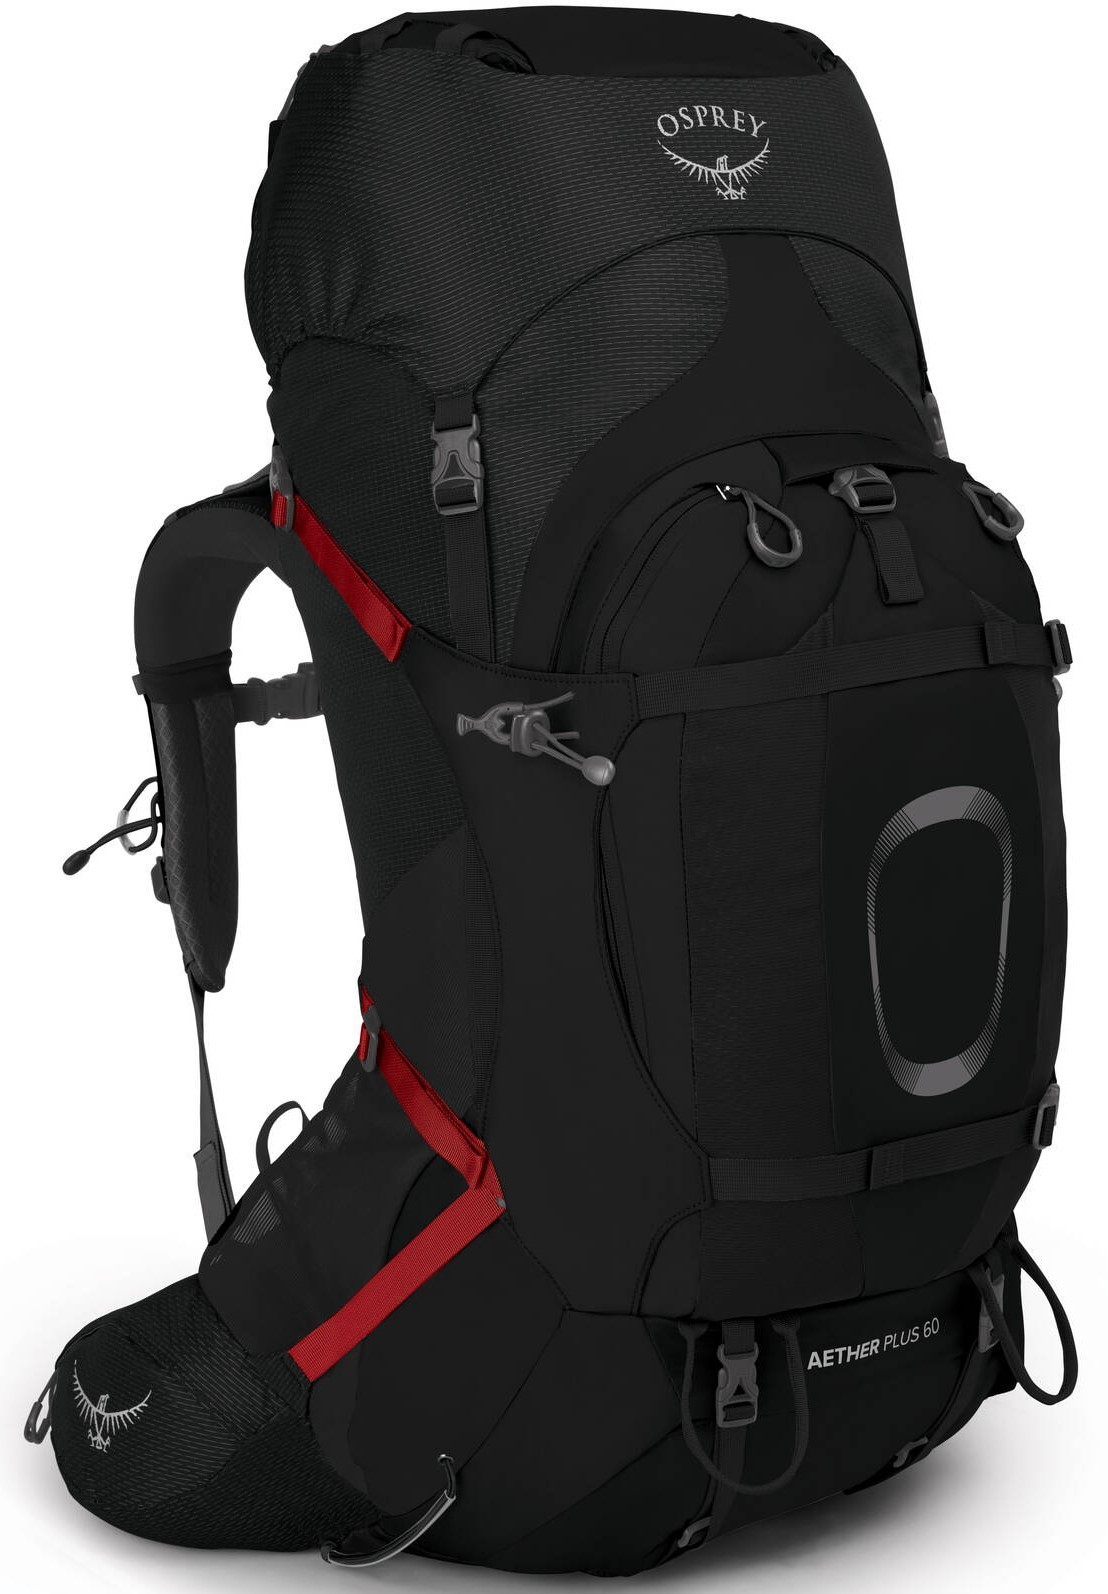 Aether AG Рюкзак туристический Osprey Aether Plus 60 Black Aether_Plus60_S21_Side_Black_web.jpg